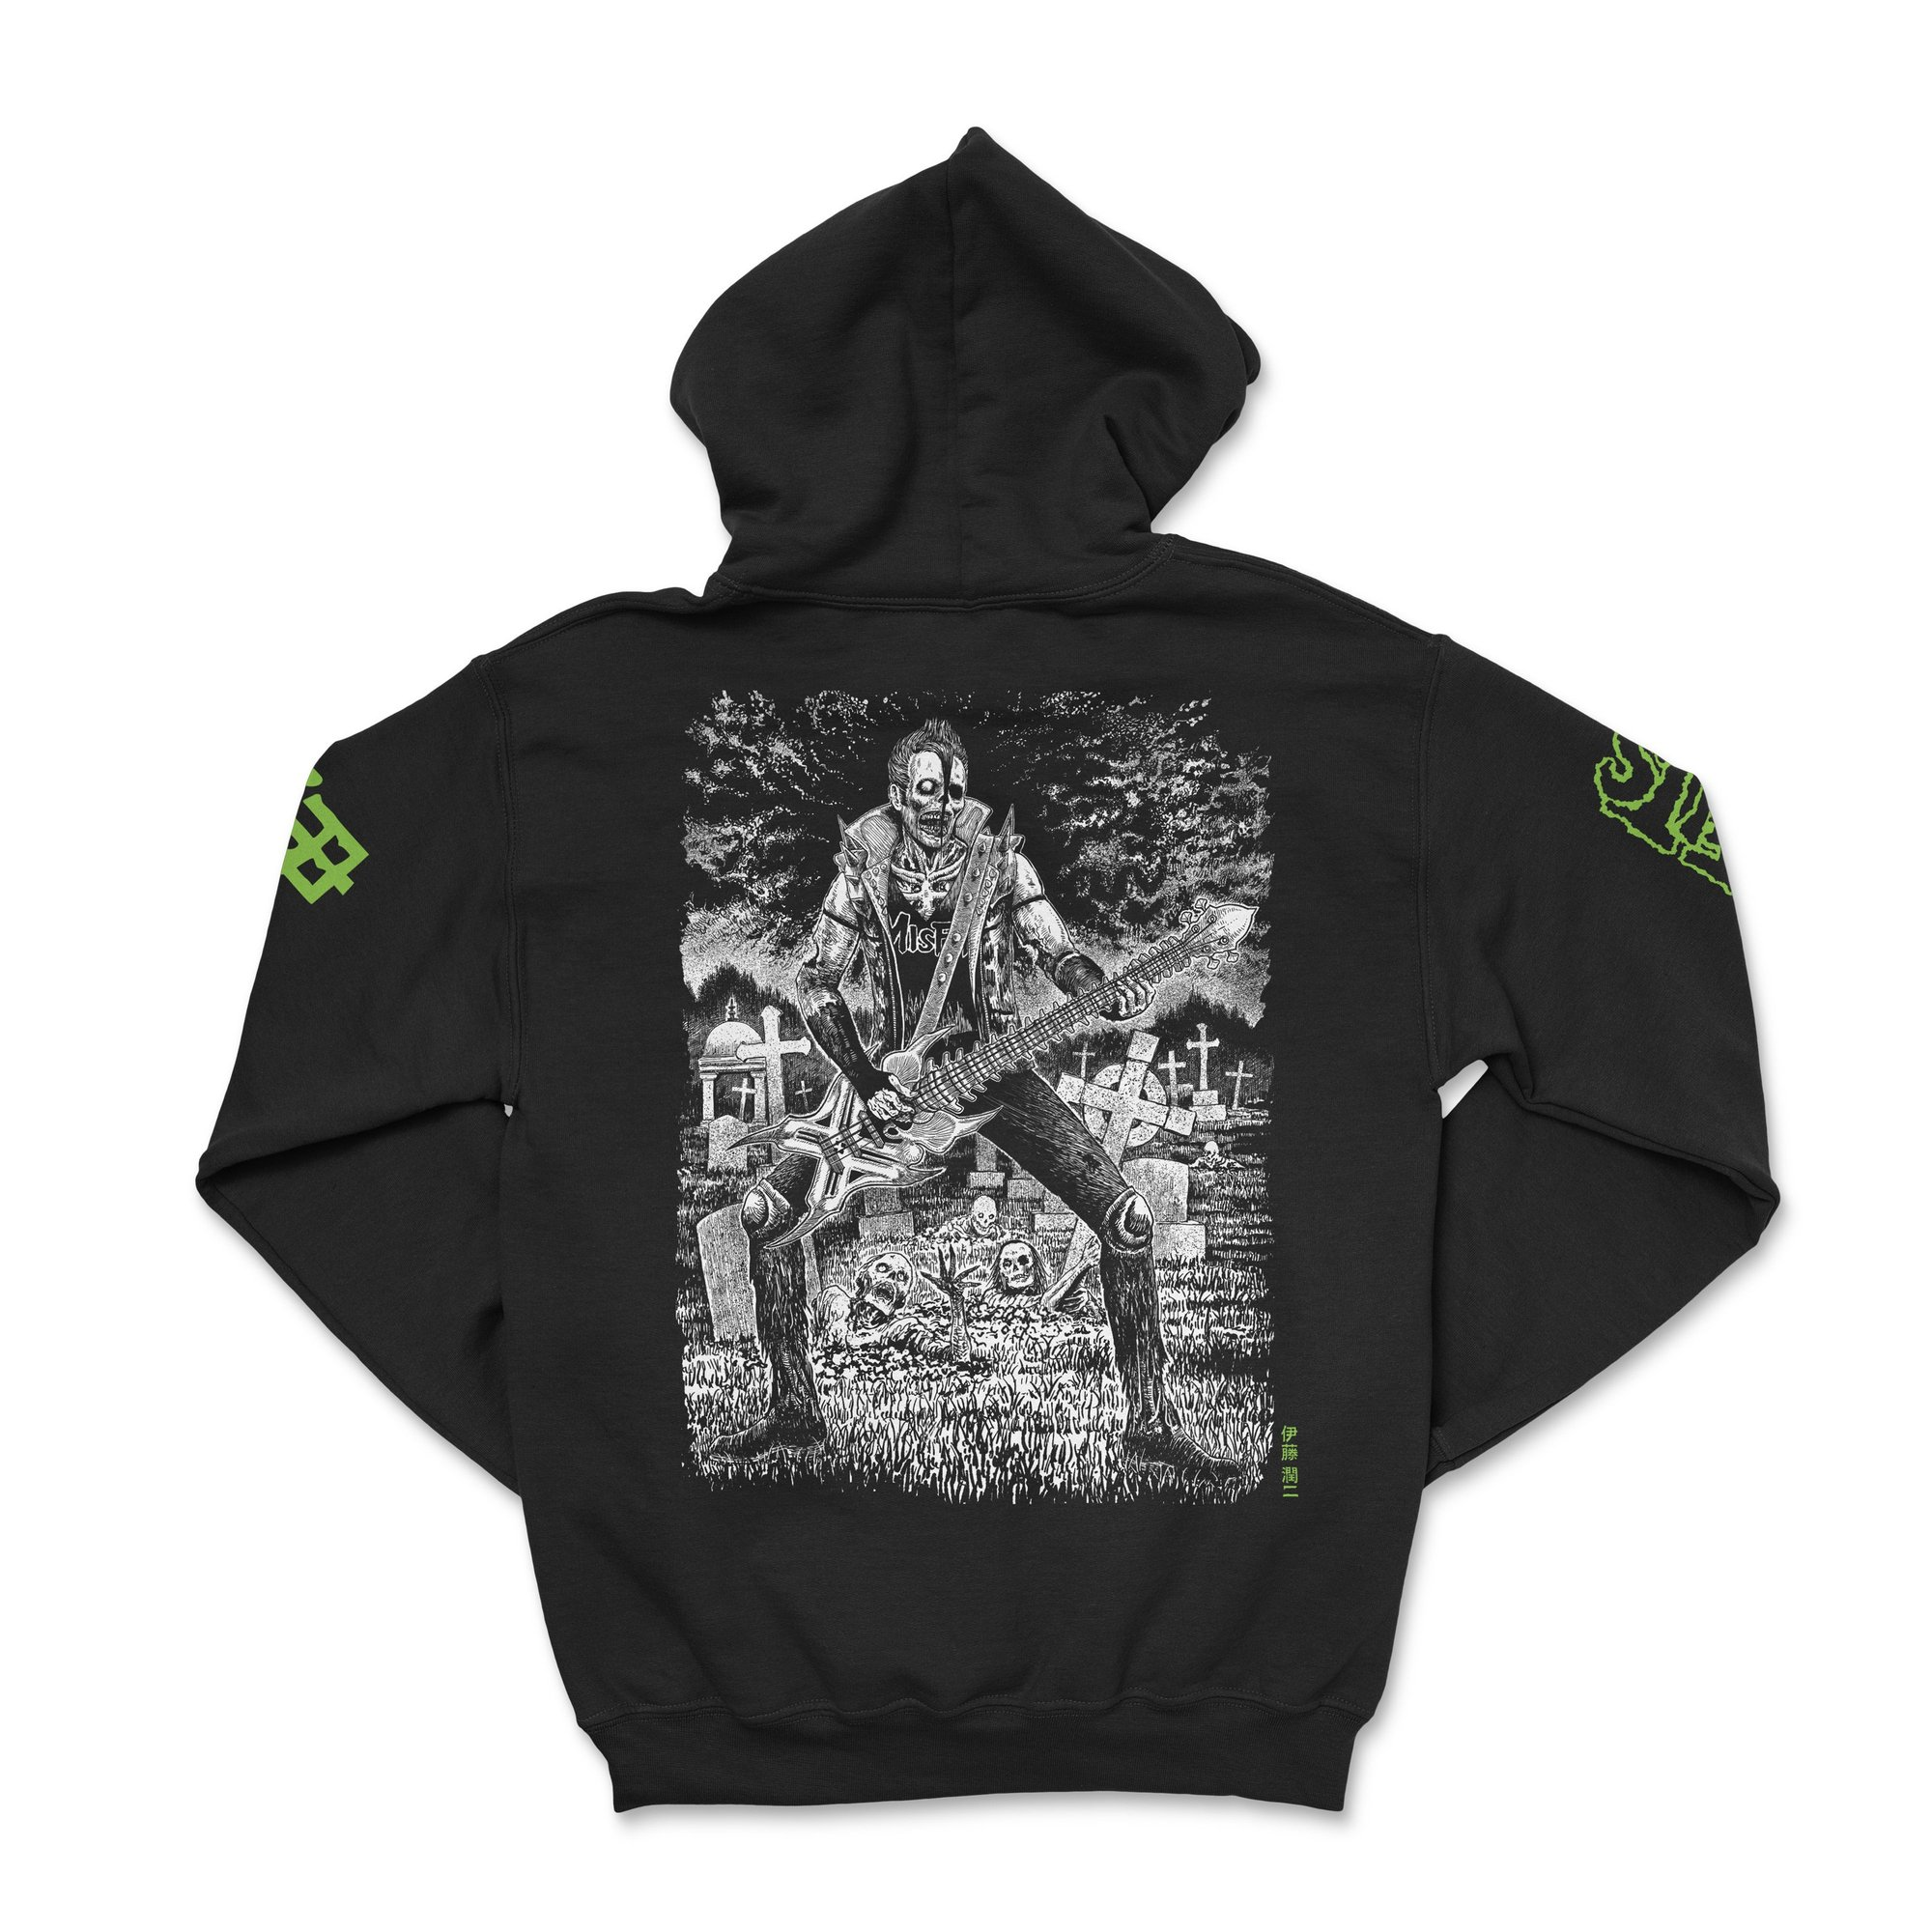 CR Loves Misfits x Junji Ito Collection Hoodie Back